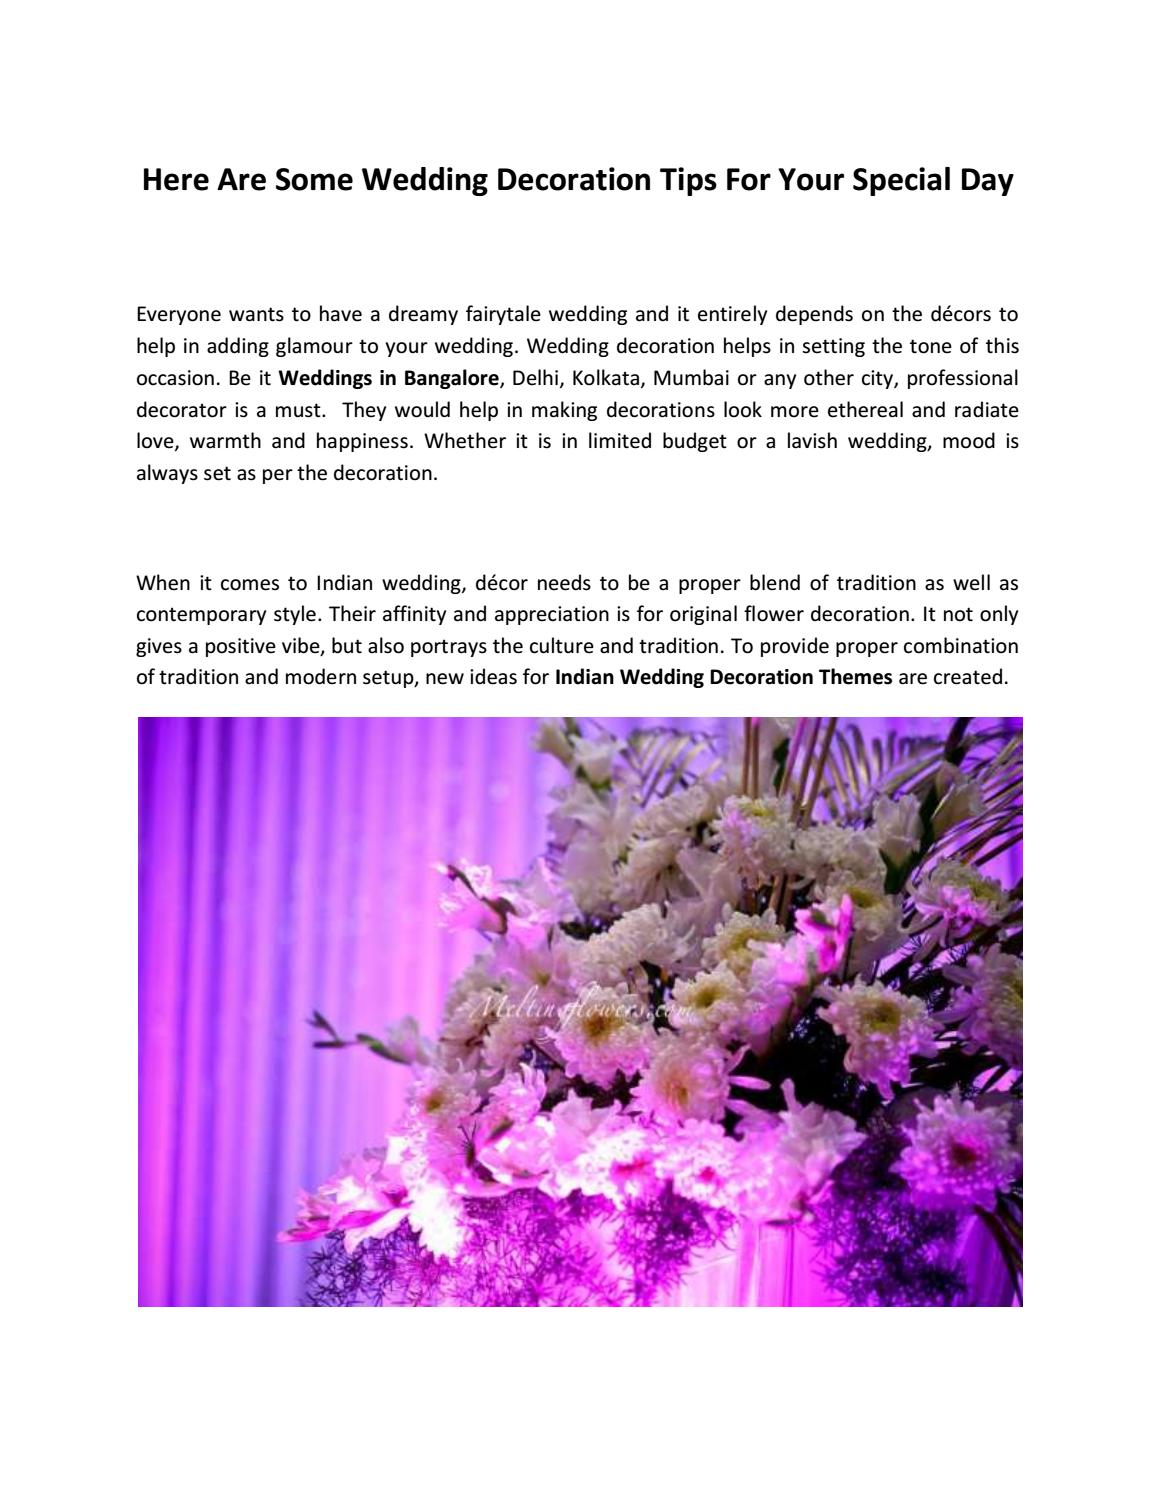 Here are some wedding decoration tips for your special day by syed here are some wedding decoration tips for your special day by syed atif issuu junglespirit Choice Image